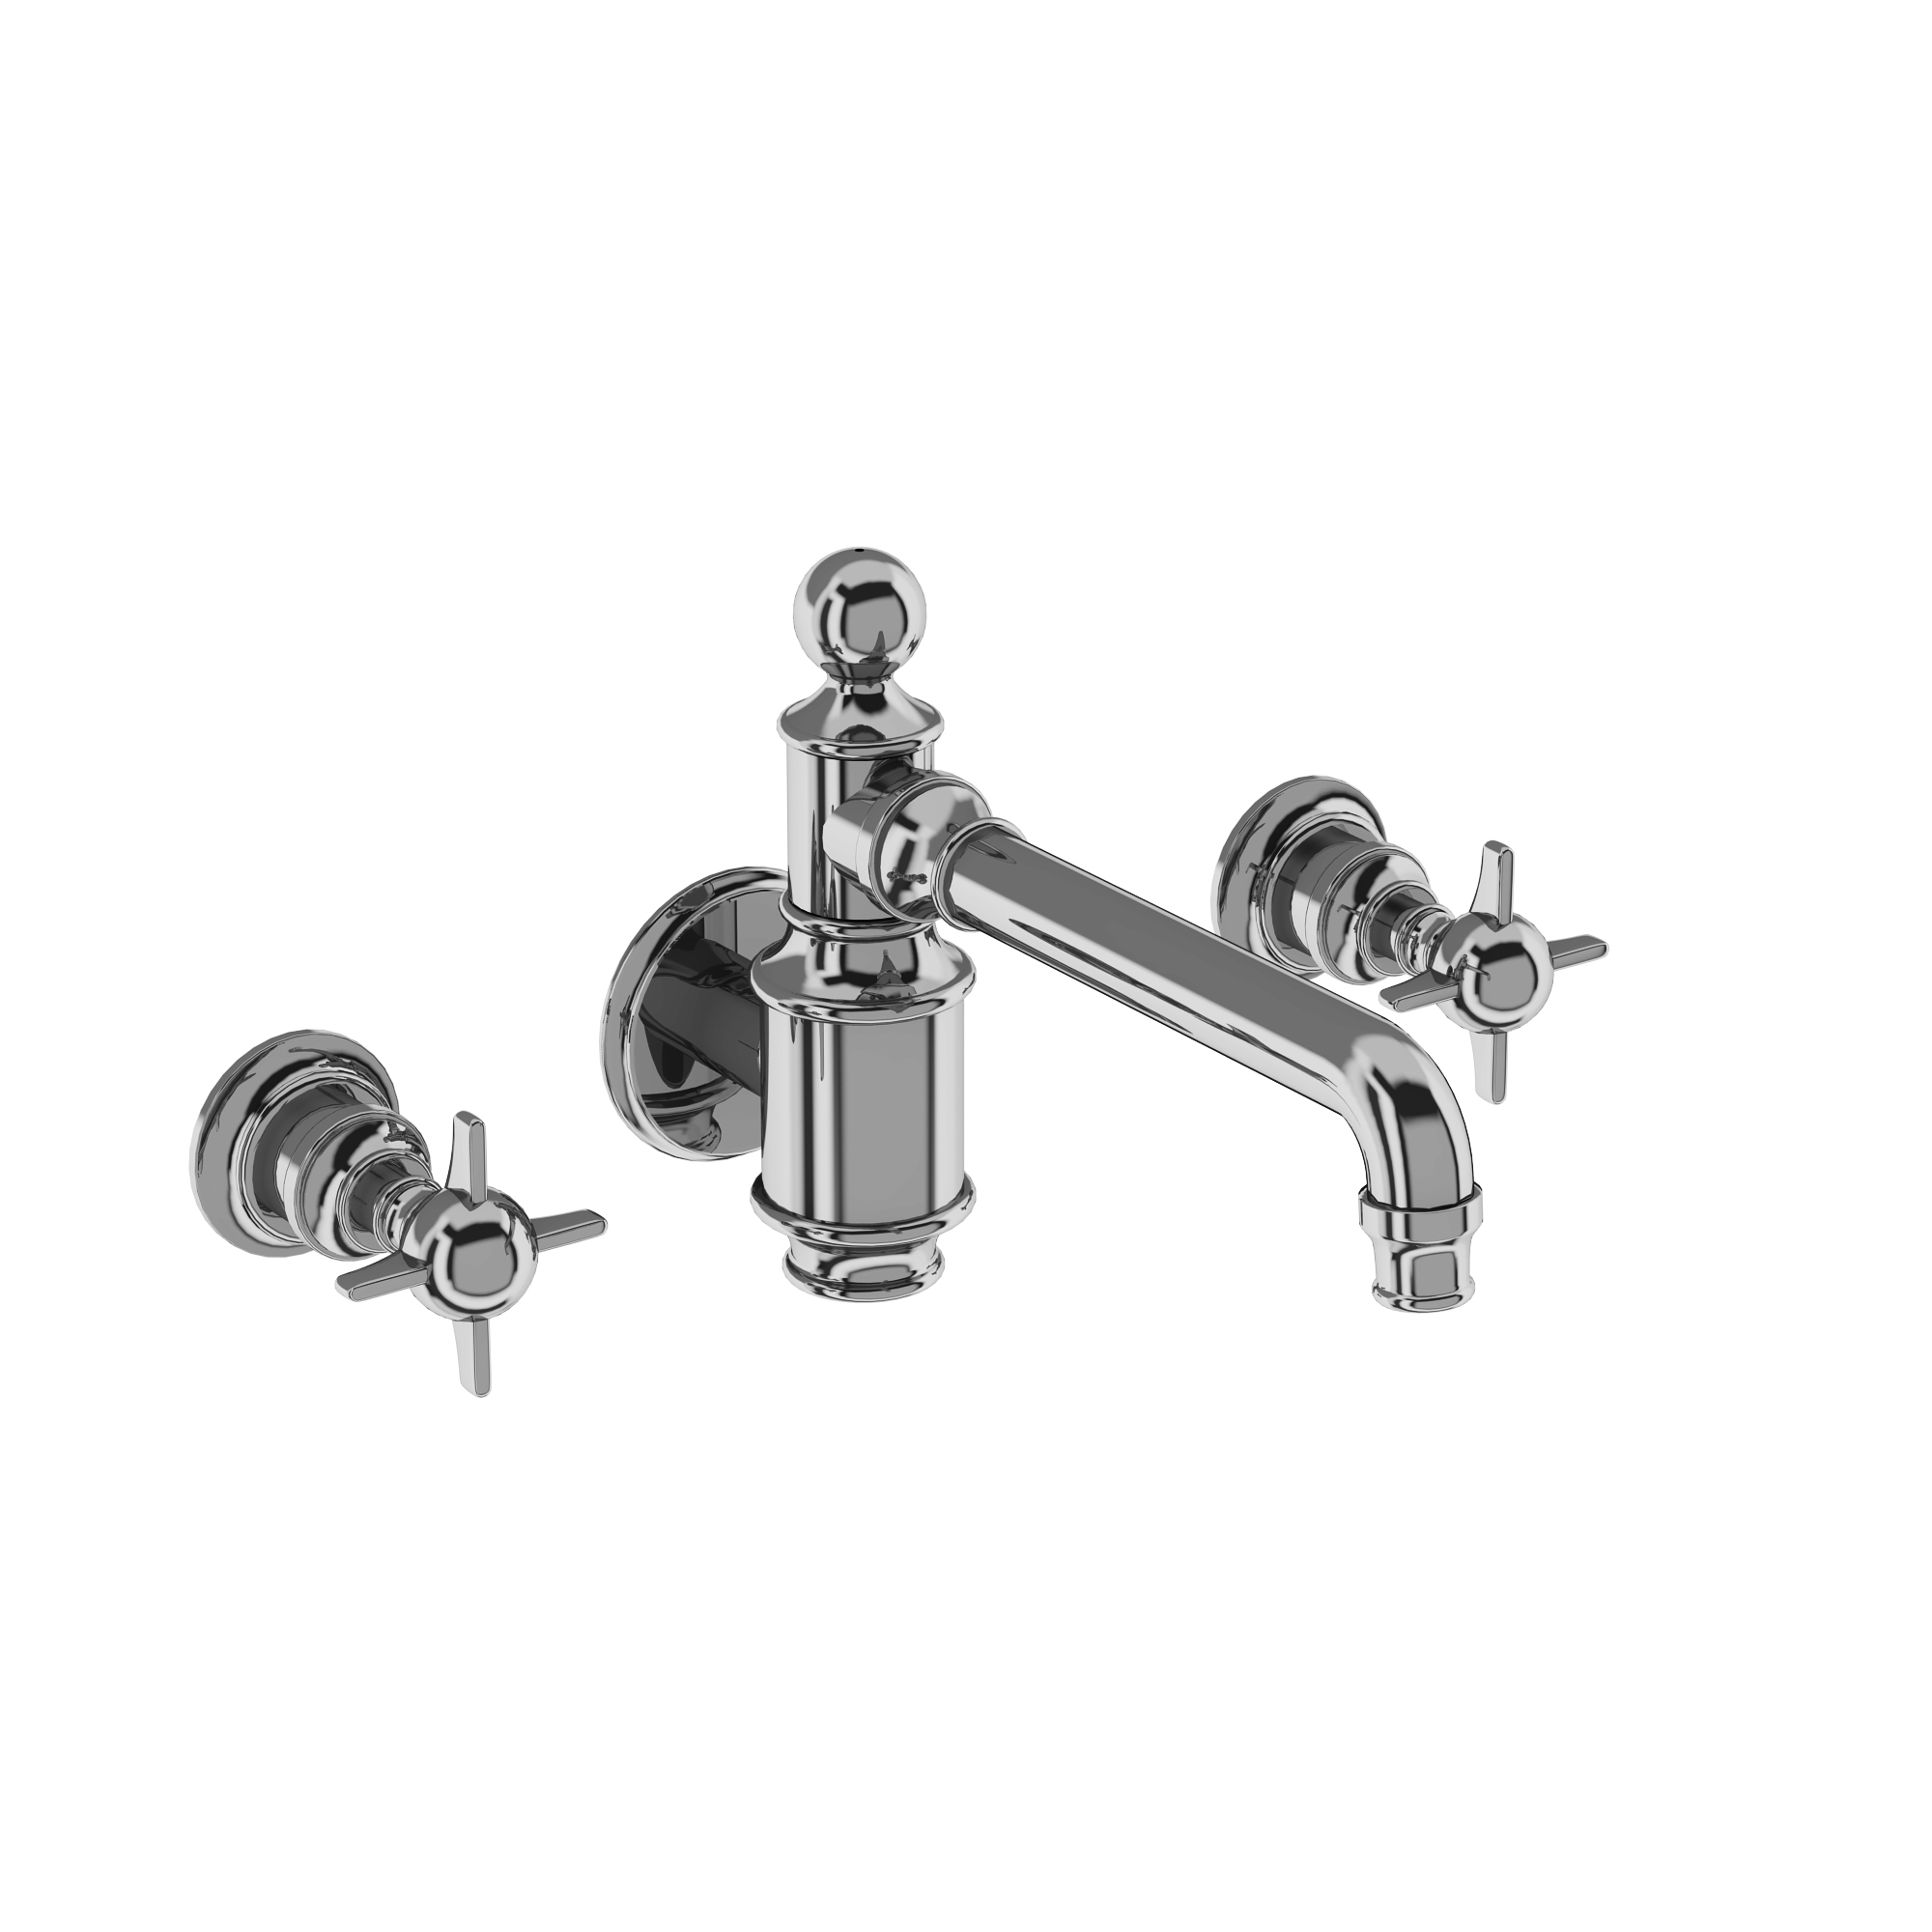 Arcade three hole basin mixer wall-mounted without pop up waste